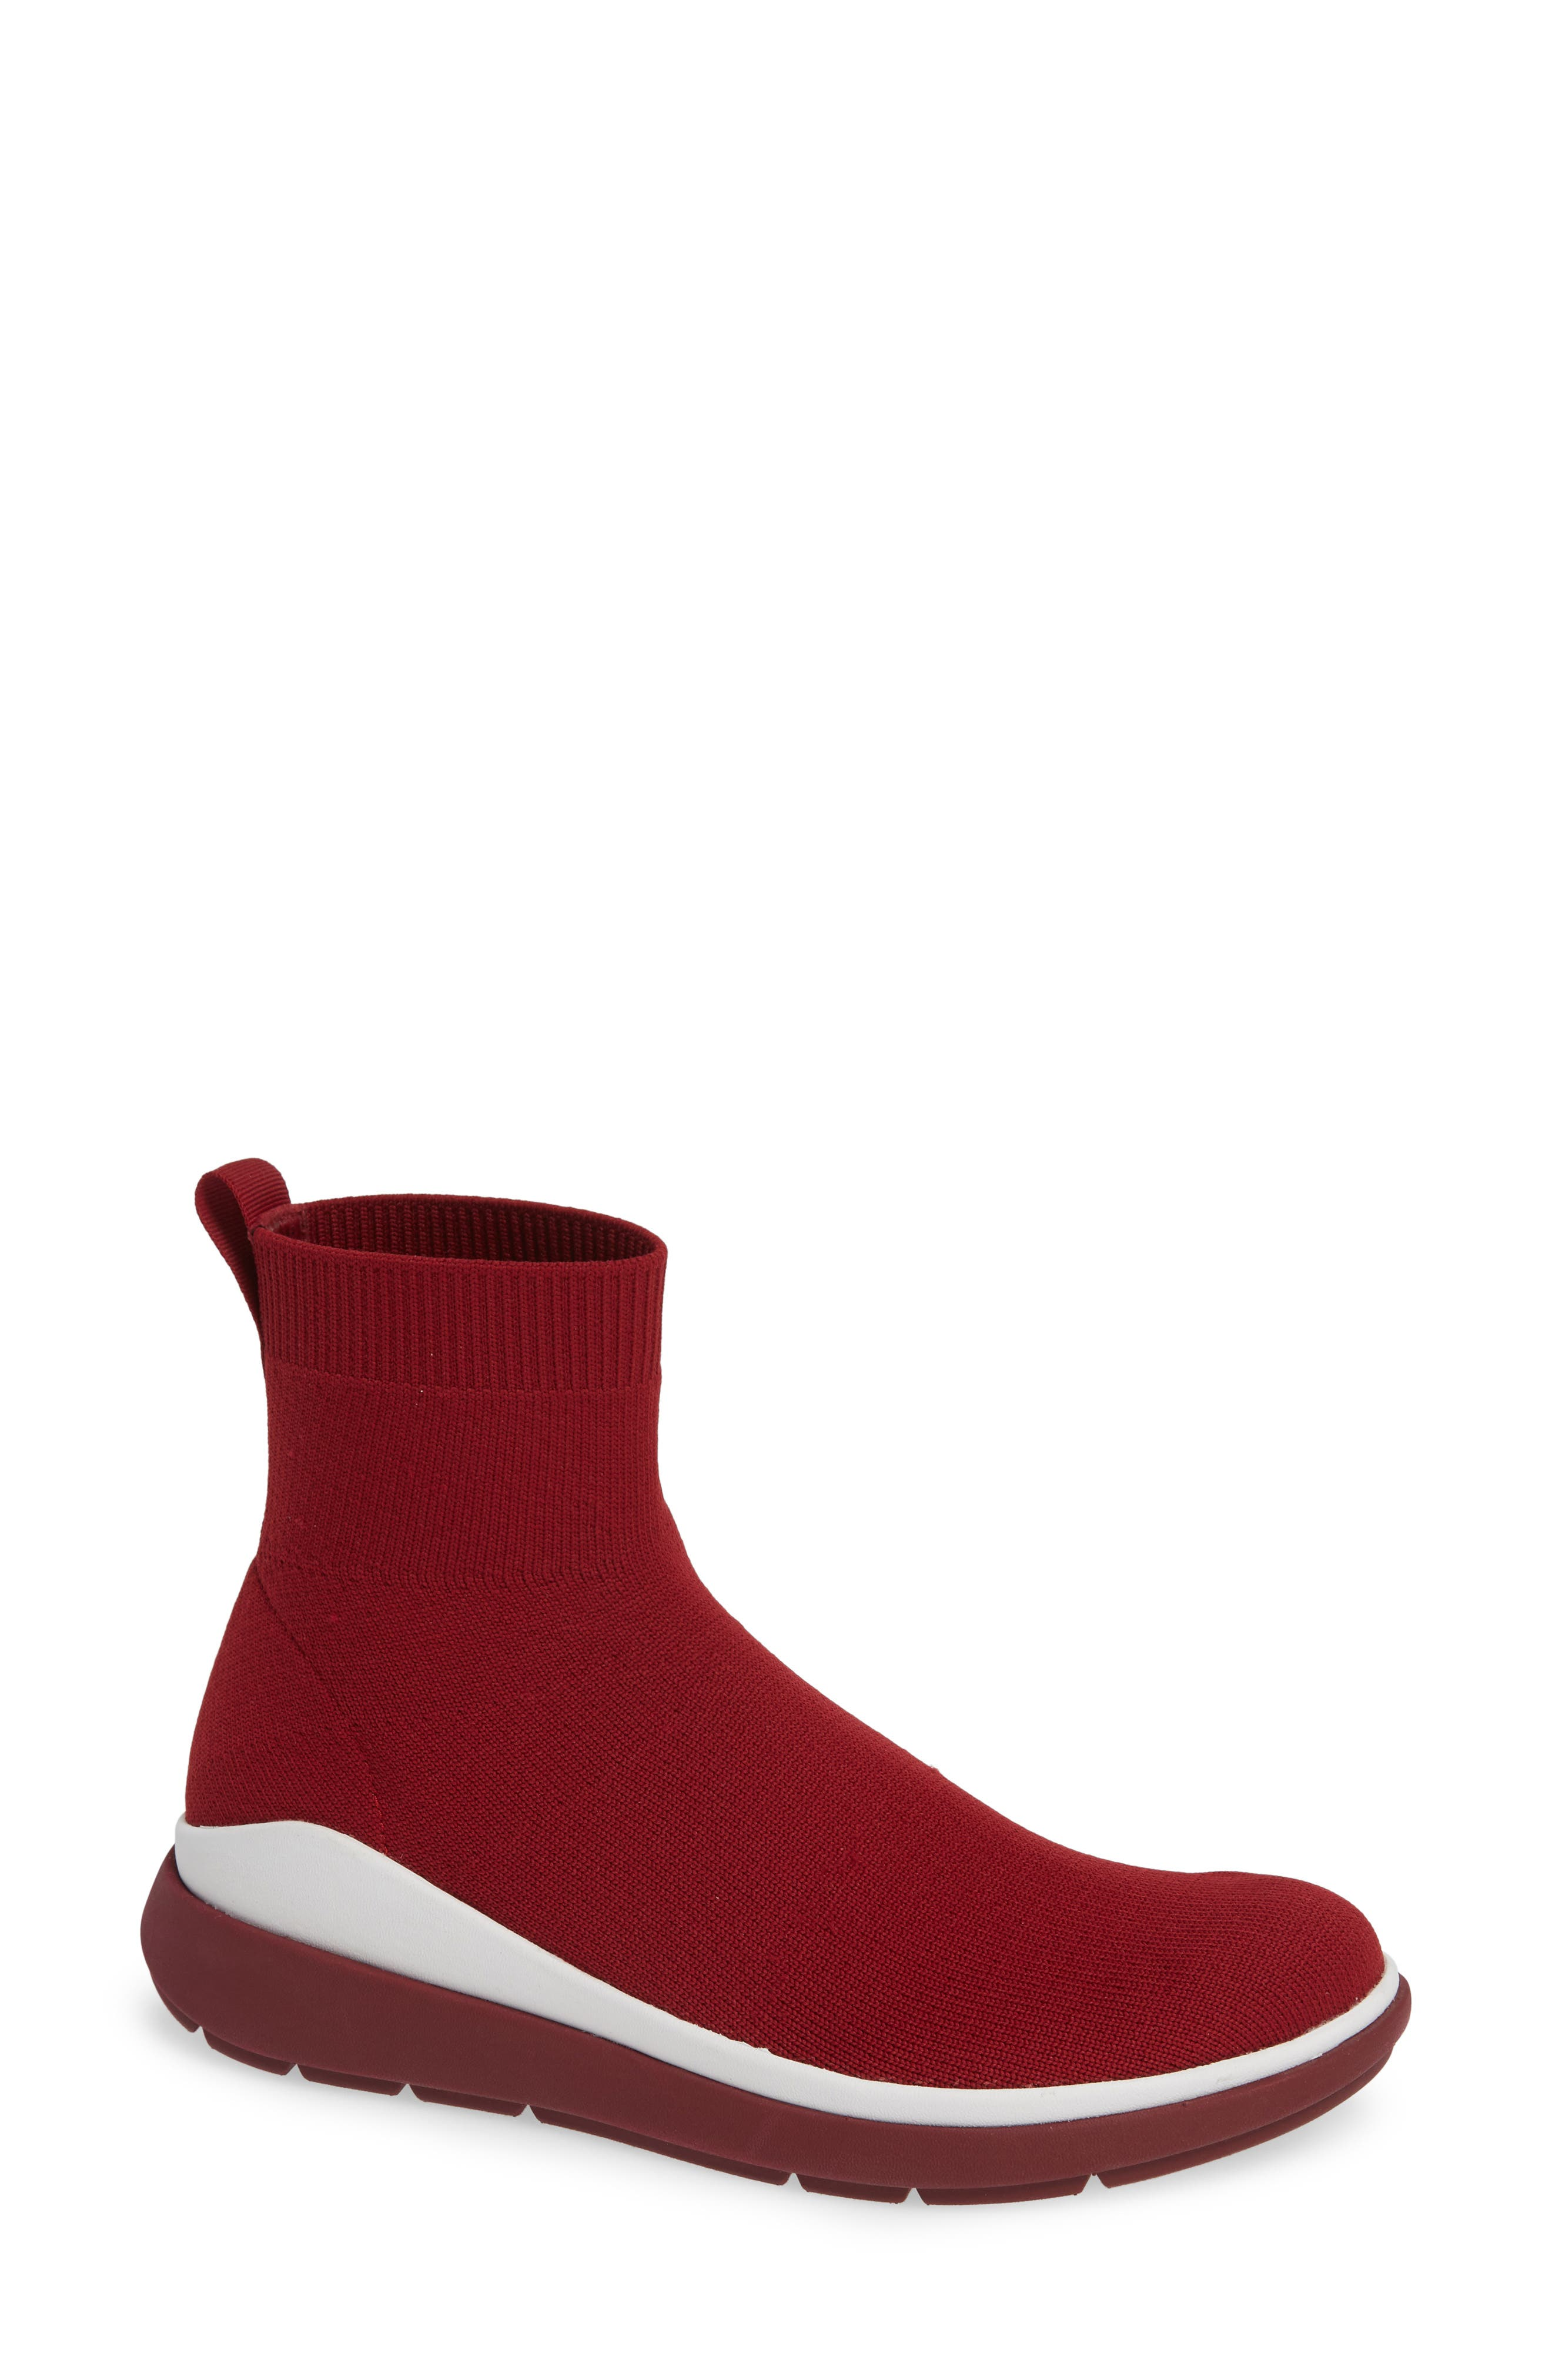 Fitflop Loosh Luxe Rapid Knit Bootie, Burgundy